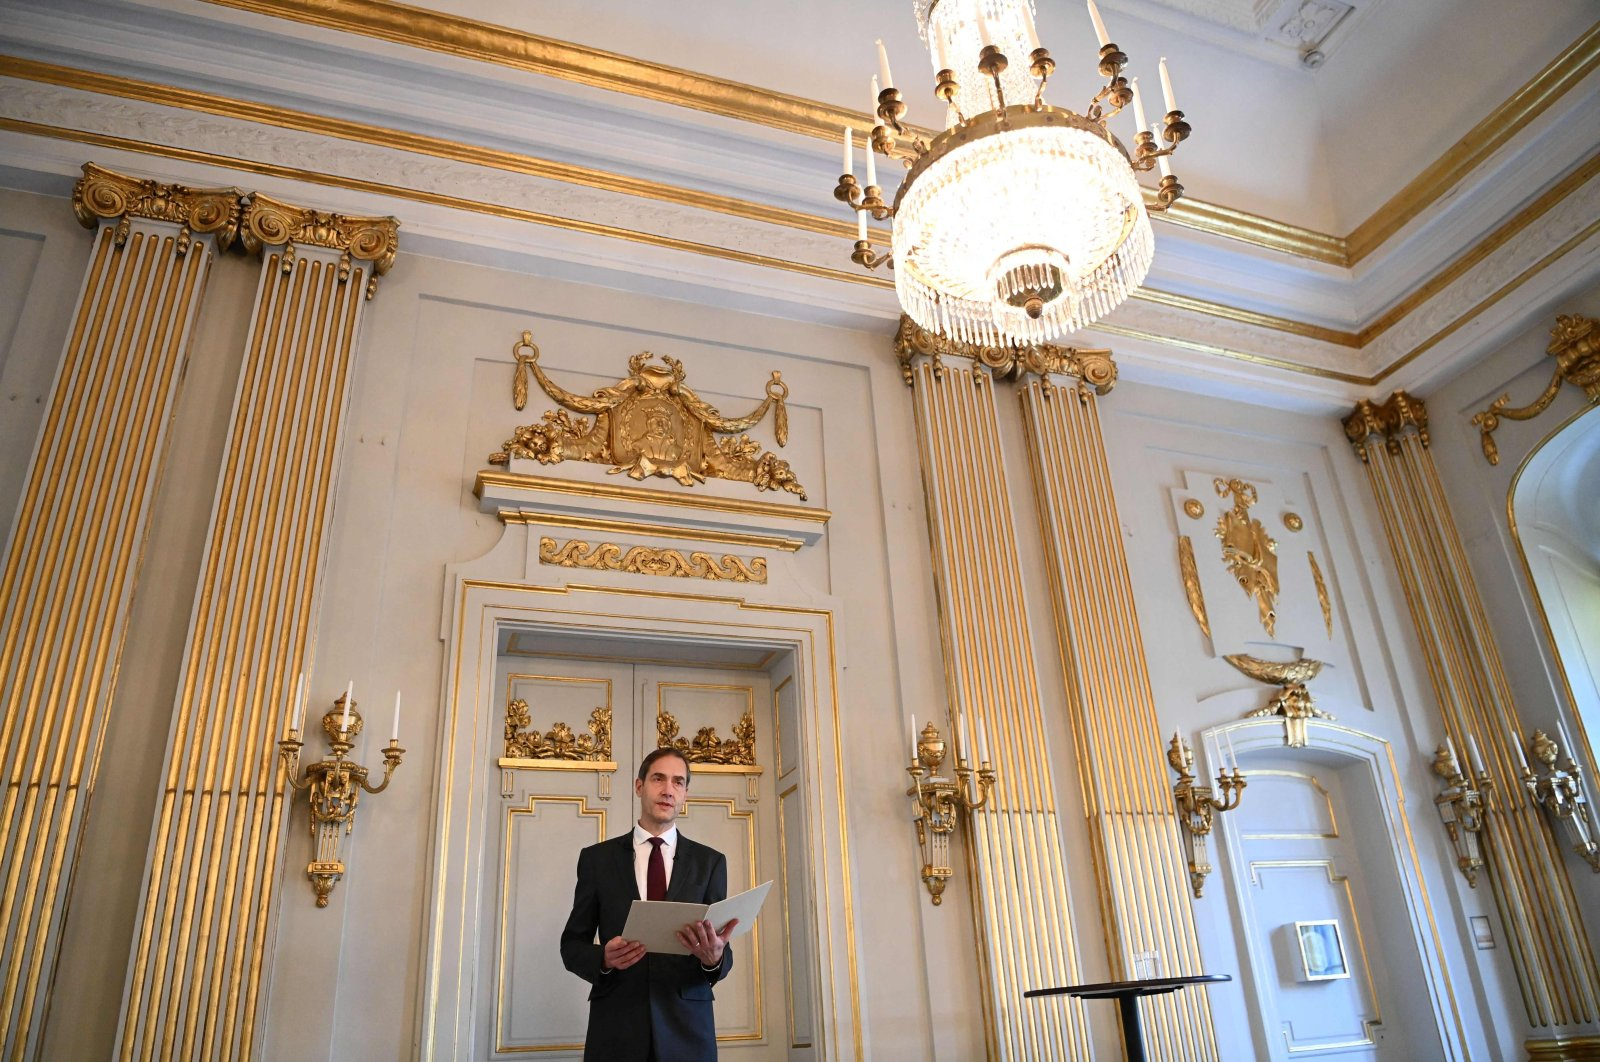 Mats Malm, permanent secretary of the Swedish Academy, speaks during a press conference to announce the winner of the 2021 Nobel Prize in literature at the Swedish Academy in Stockholm, Sweden, Oct. 7, 2021. (AFP Photo)